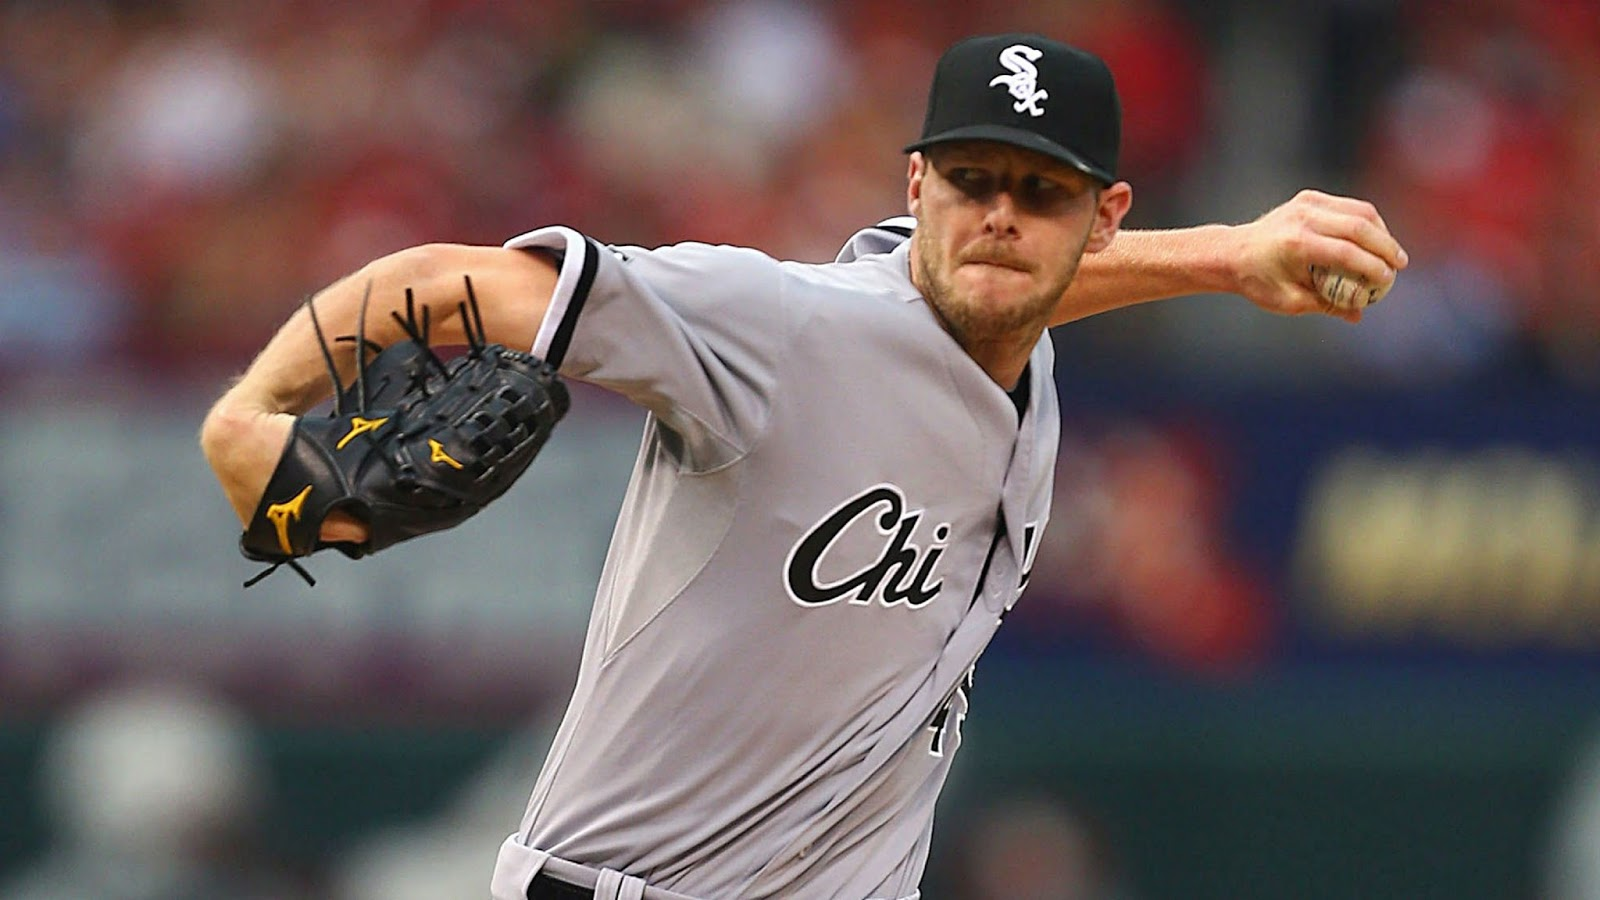 CHRIS SALE 3